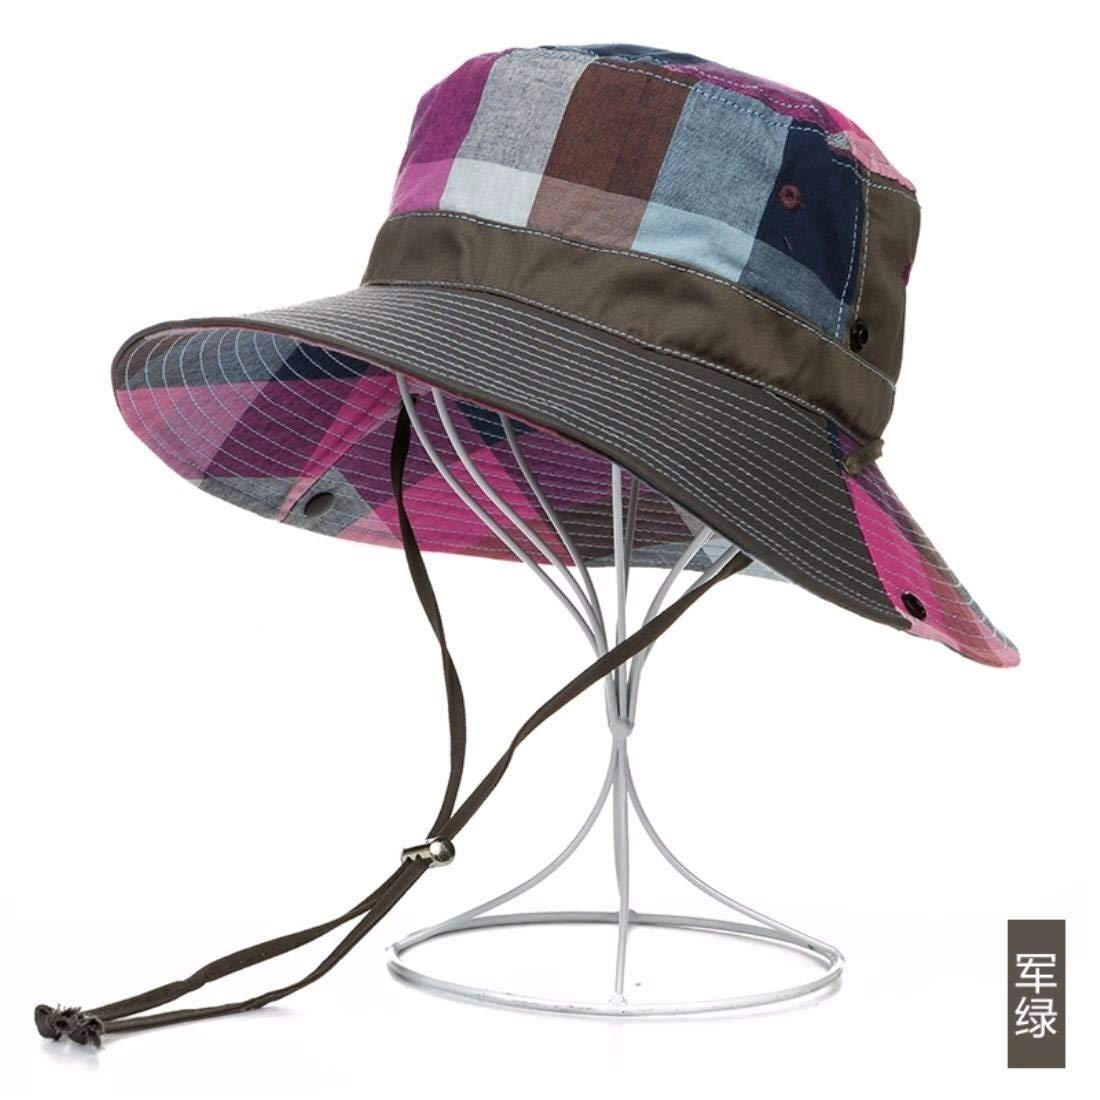 Aoxishiye Sun Hat with Strap, Wide Brim Print Cap for Fishing Travel (Color : A, Size : M) by Aoxishiye